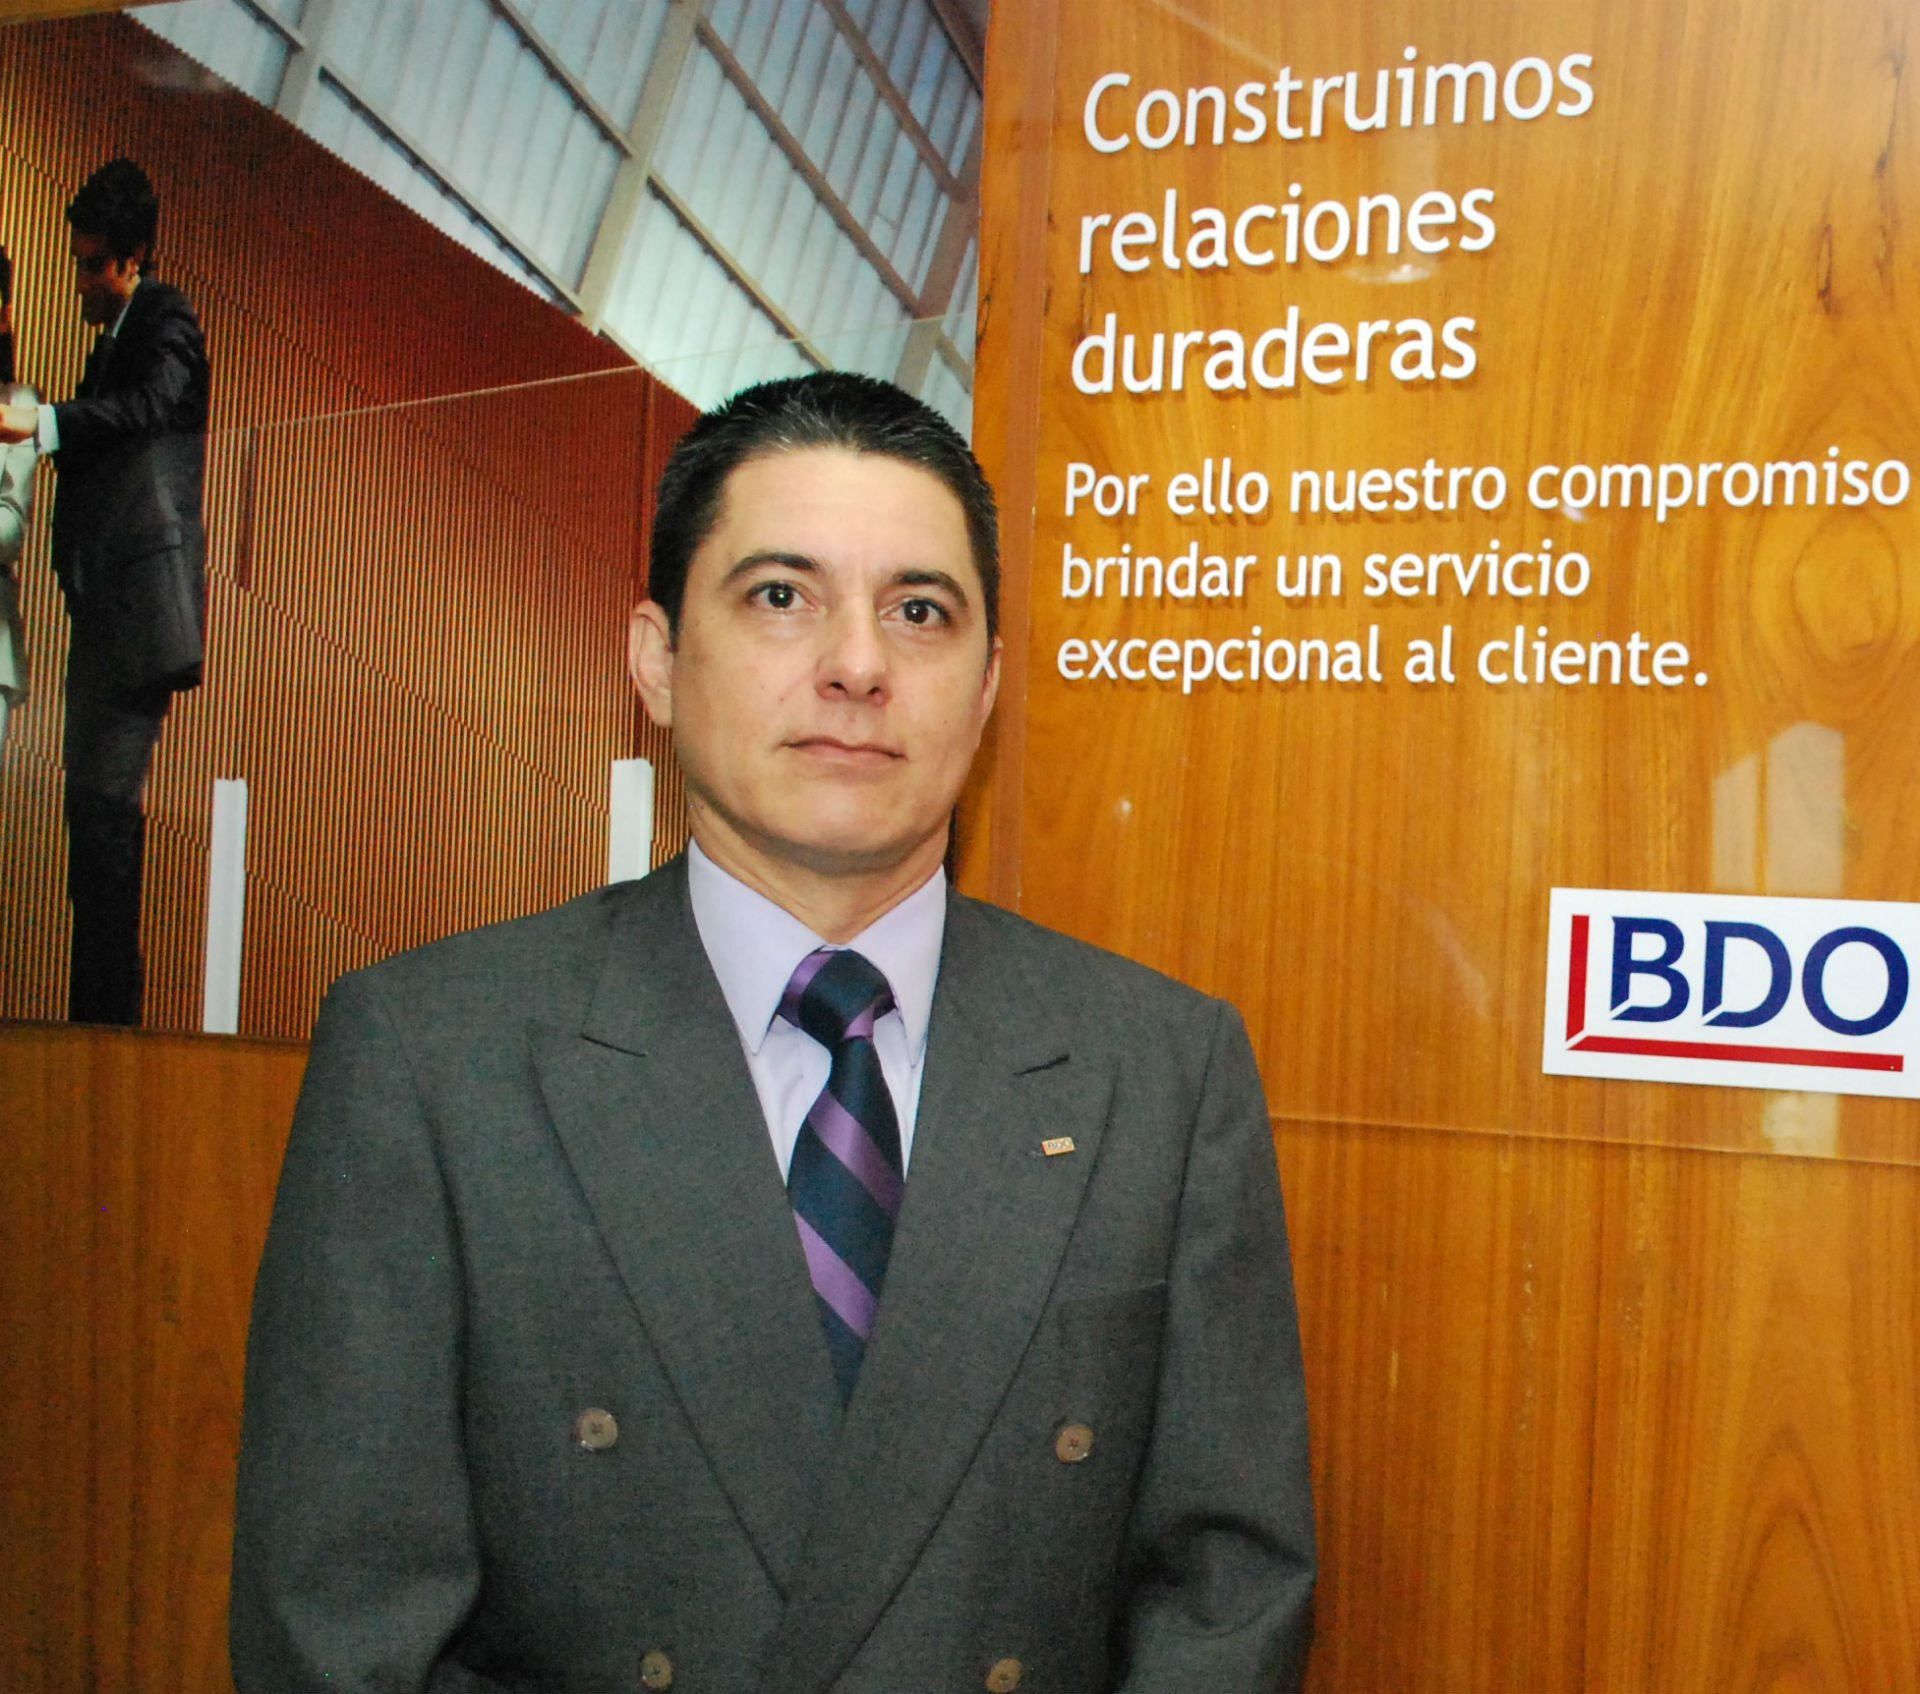 Christian Benitez, Audit Manager